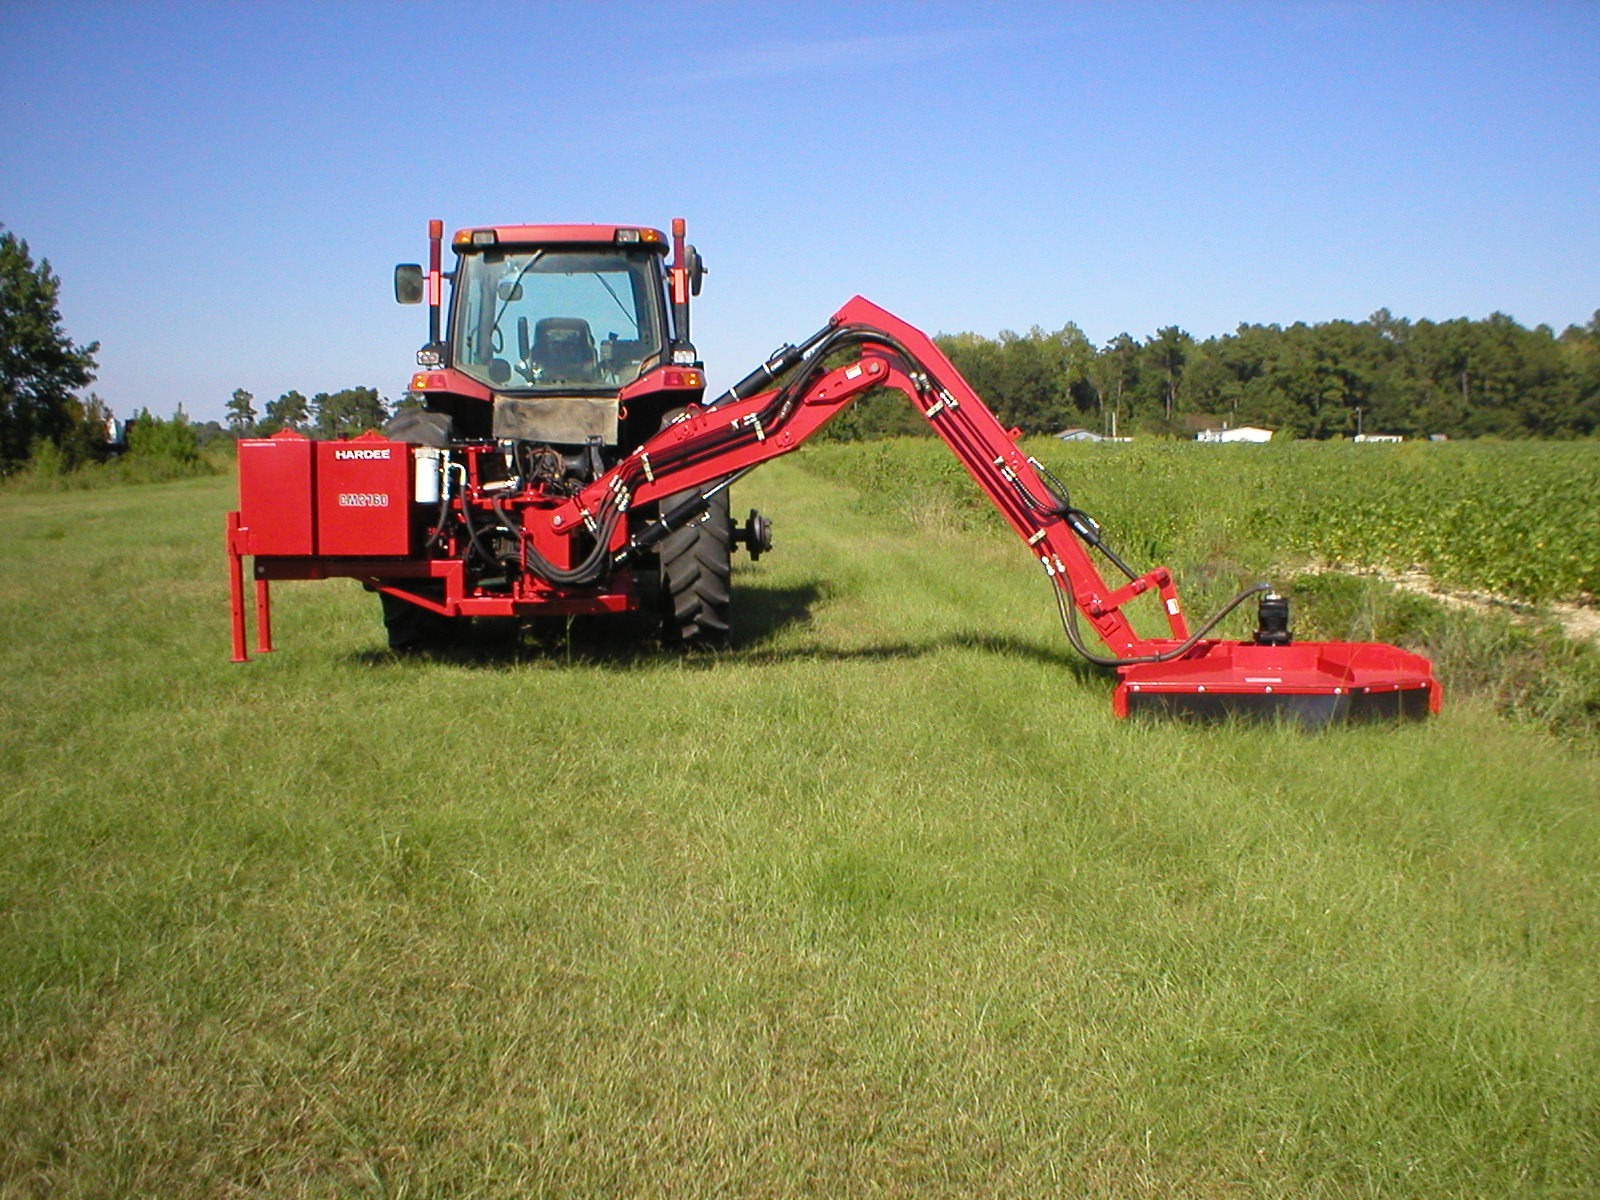 CM2160 | Hardee By EVH Mfg Co  - Agriculture Equipment